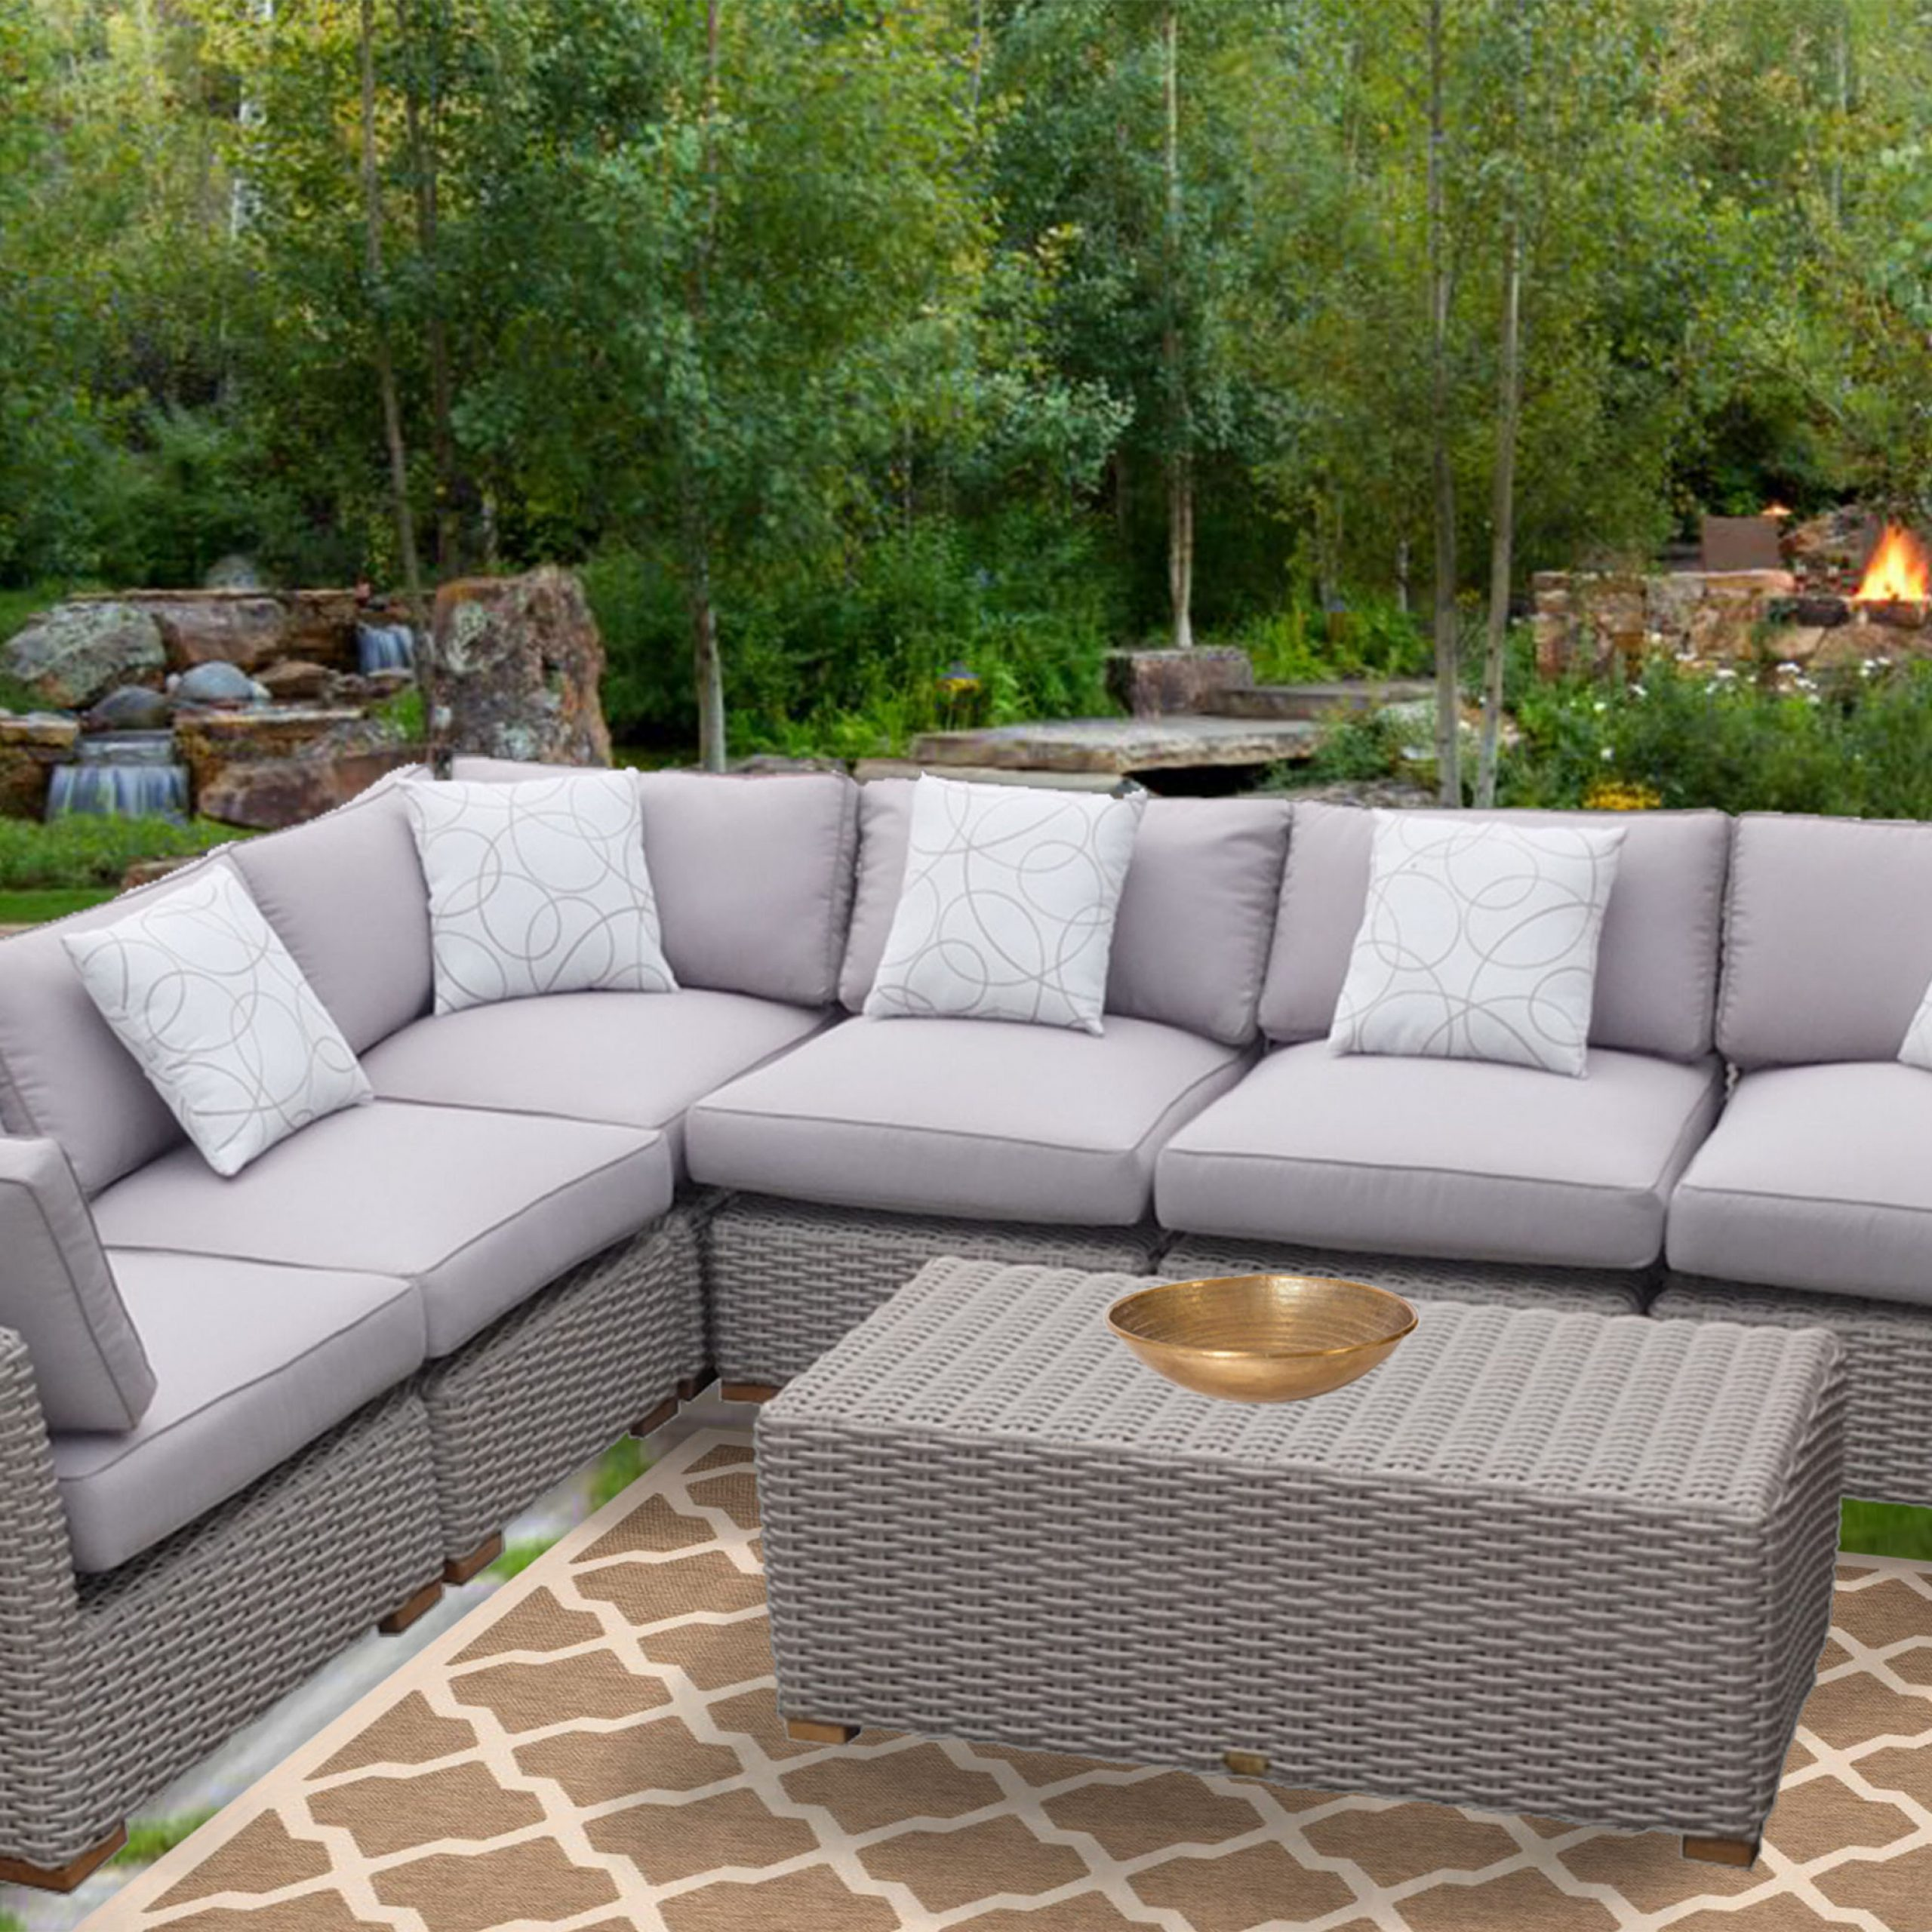 Fashionable Brayden Studio Serina 7 Piece Sectional Set With Cushions With Boyce Outdoor Patio Sectionals With Cushions (View 5 of 25)